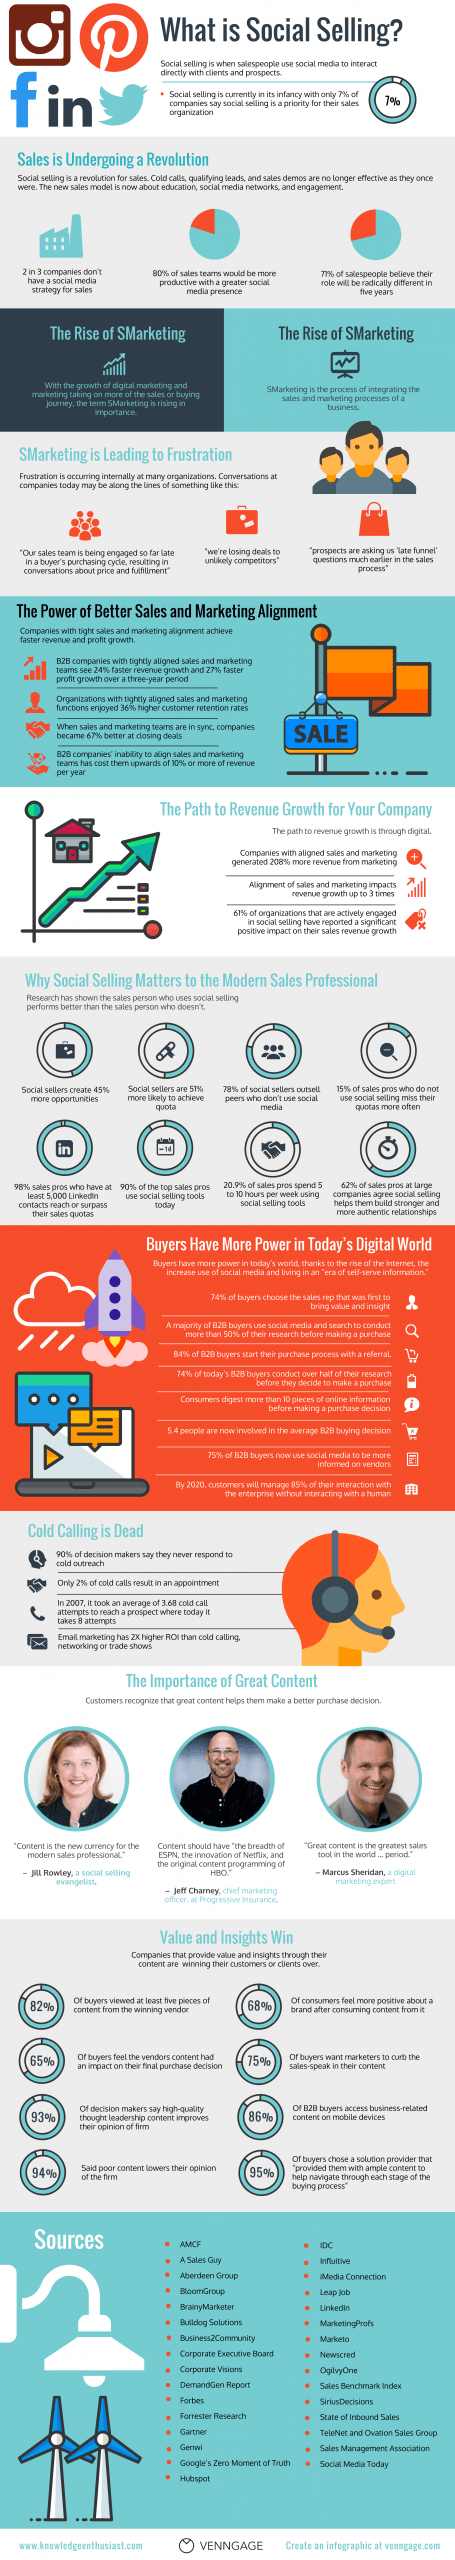 social selling infographic - knowledgeenthusiast